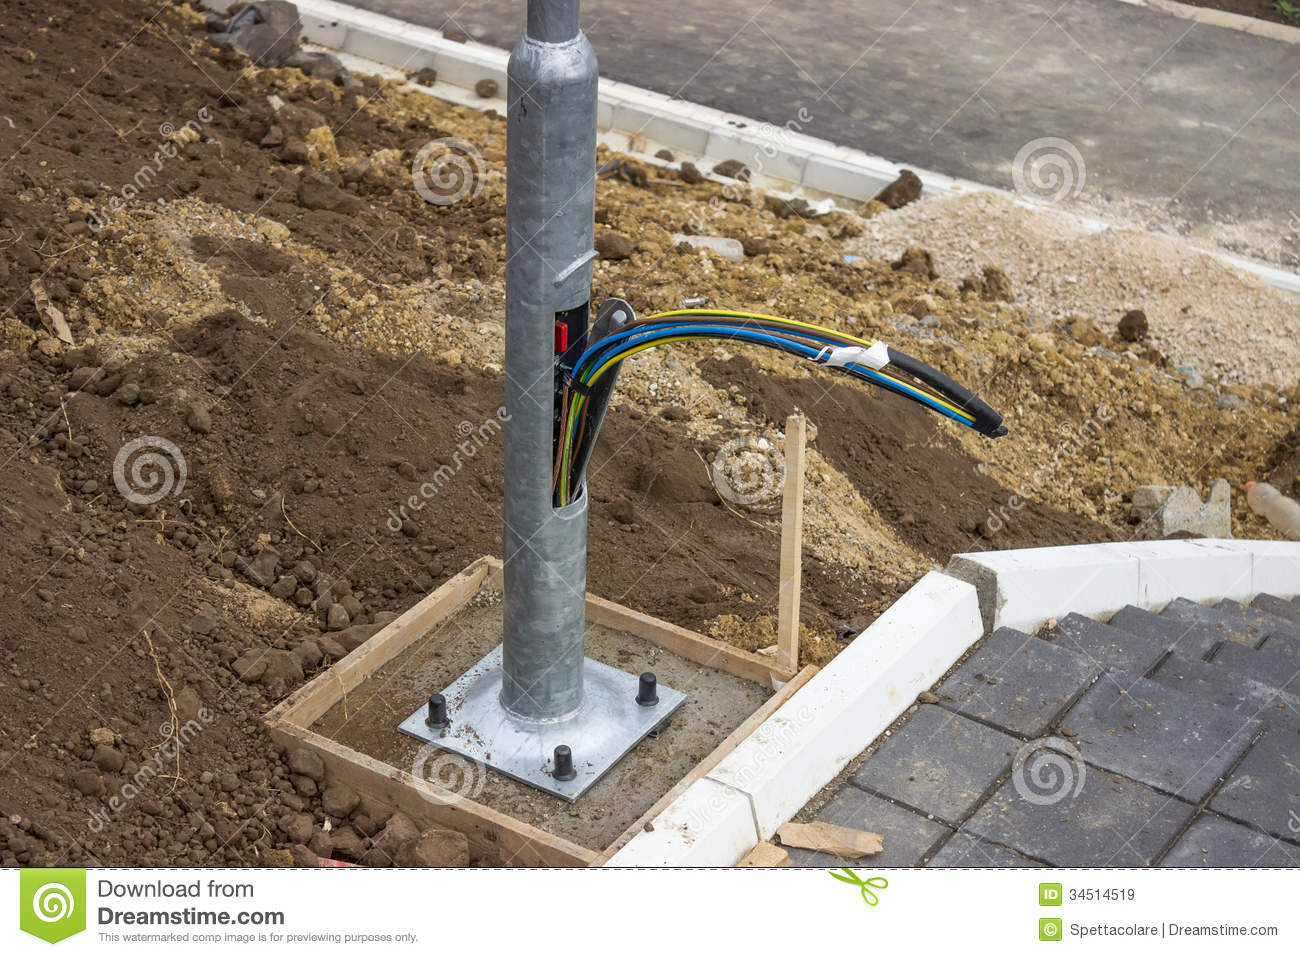 wiring lamp post 2 stock image image of heap laborer 34514519 rh dreamstime com Wiring Lamp with Night Light Lamp Socket Wiring Diagram